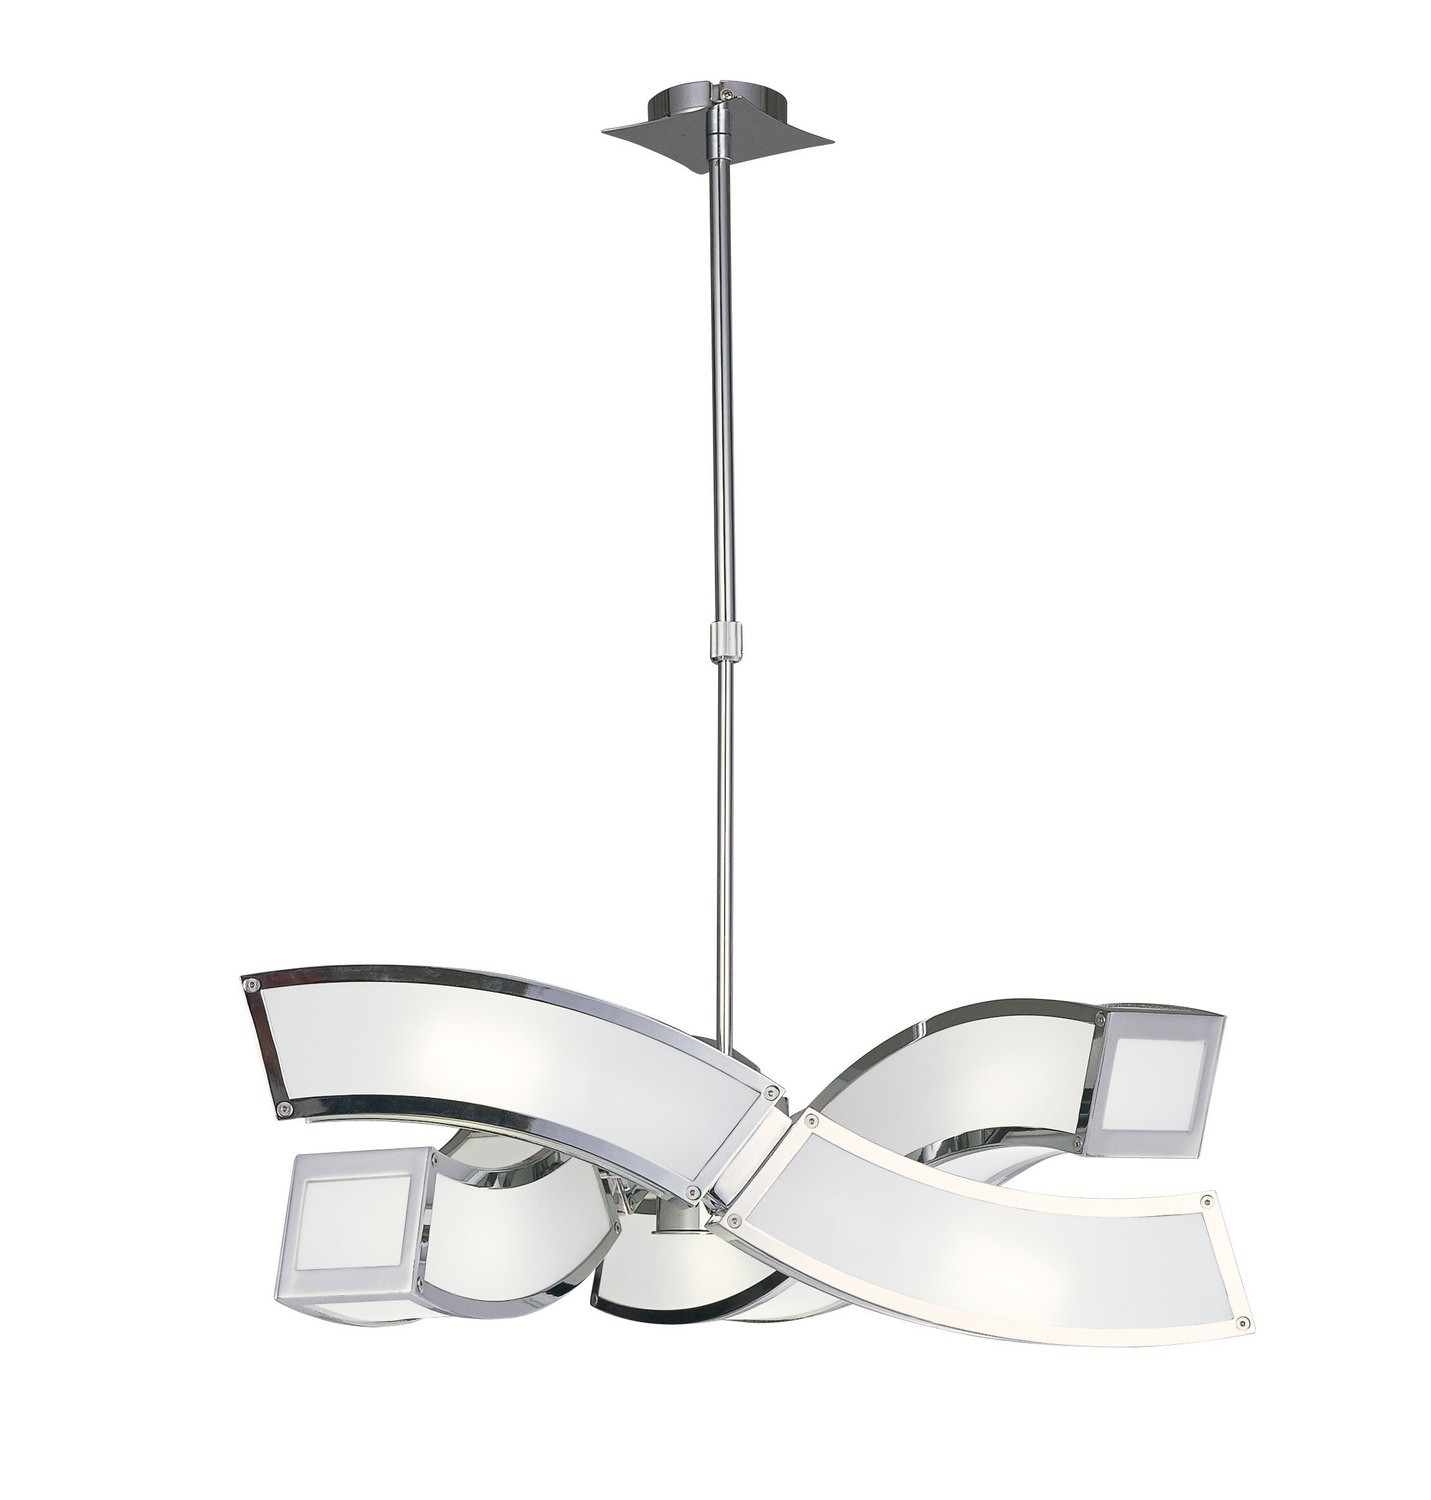 Duna GU10 Pendant 3 Arm 6 Light L1/SGU10, Polished Chrome/White Acrylic